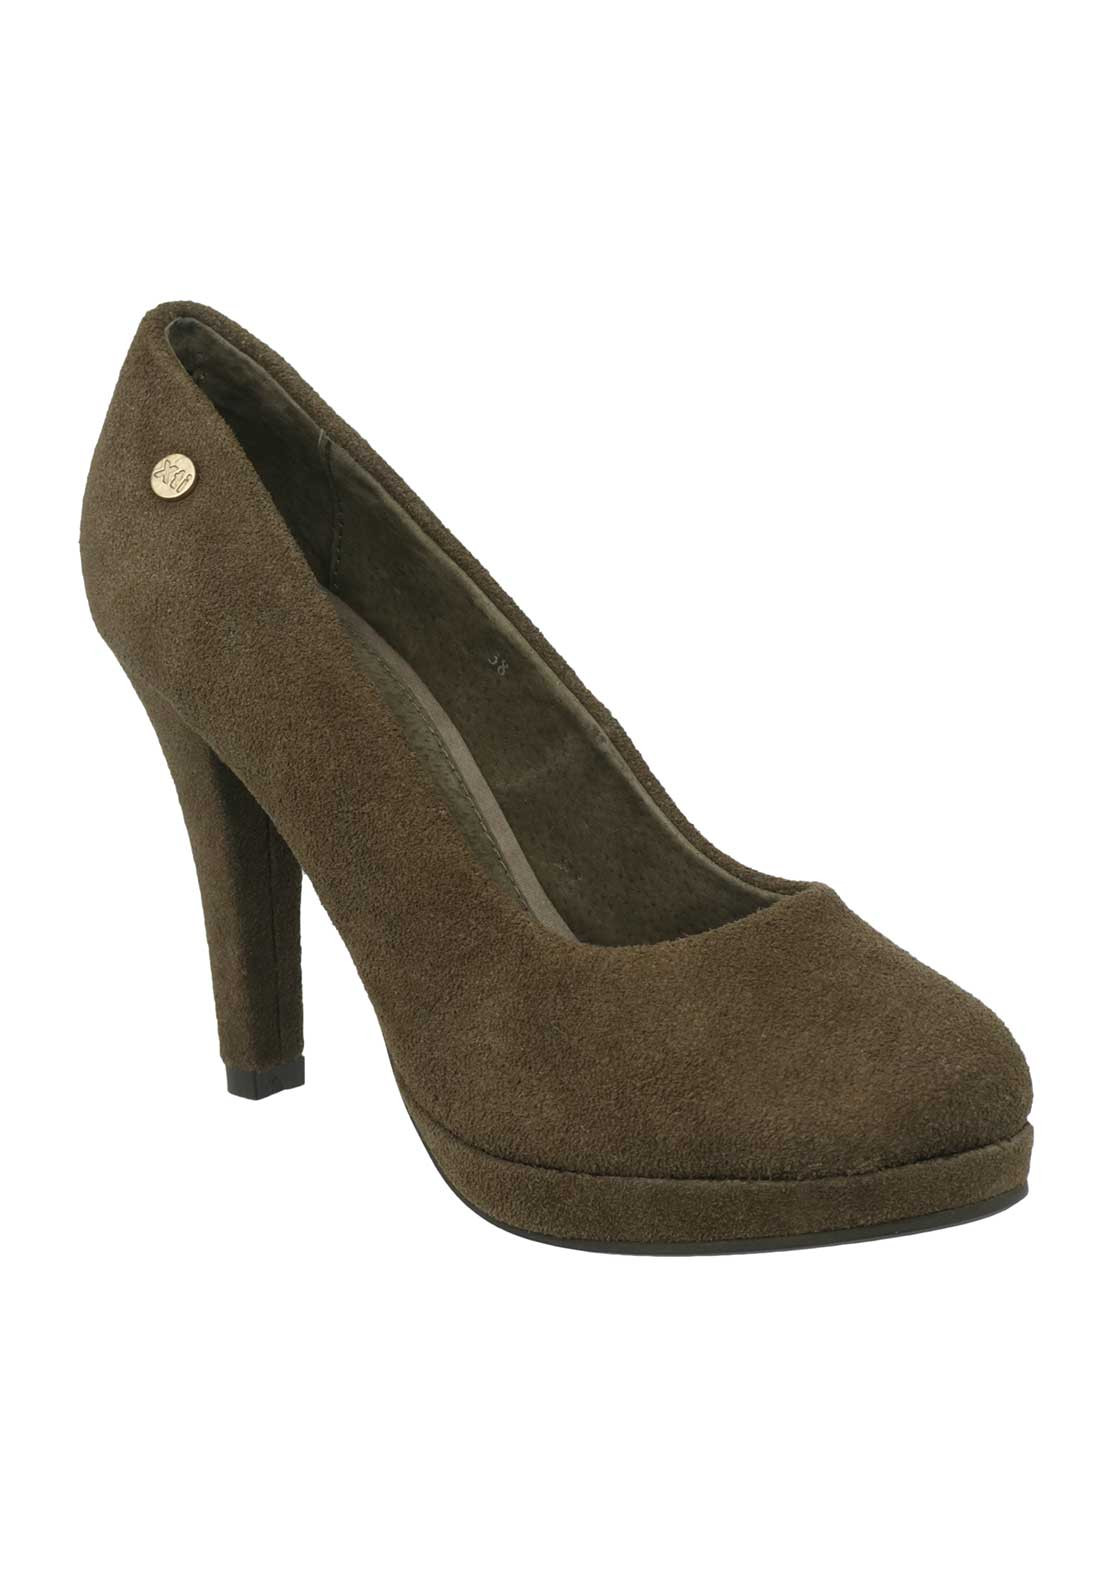 Xti Womens Suede Platform Heeled Court Shoes, Taupe